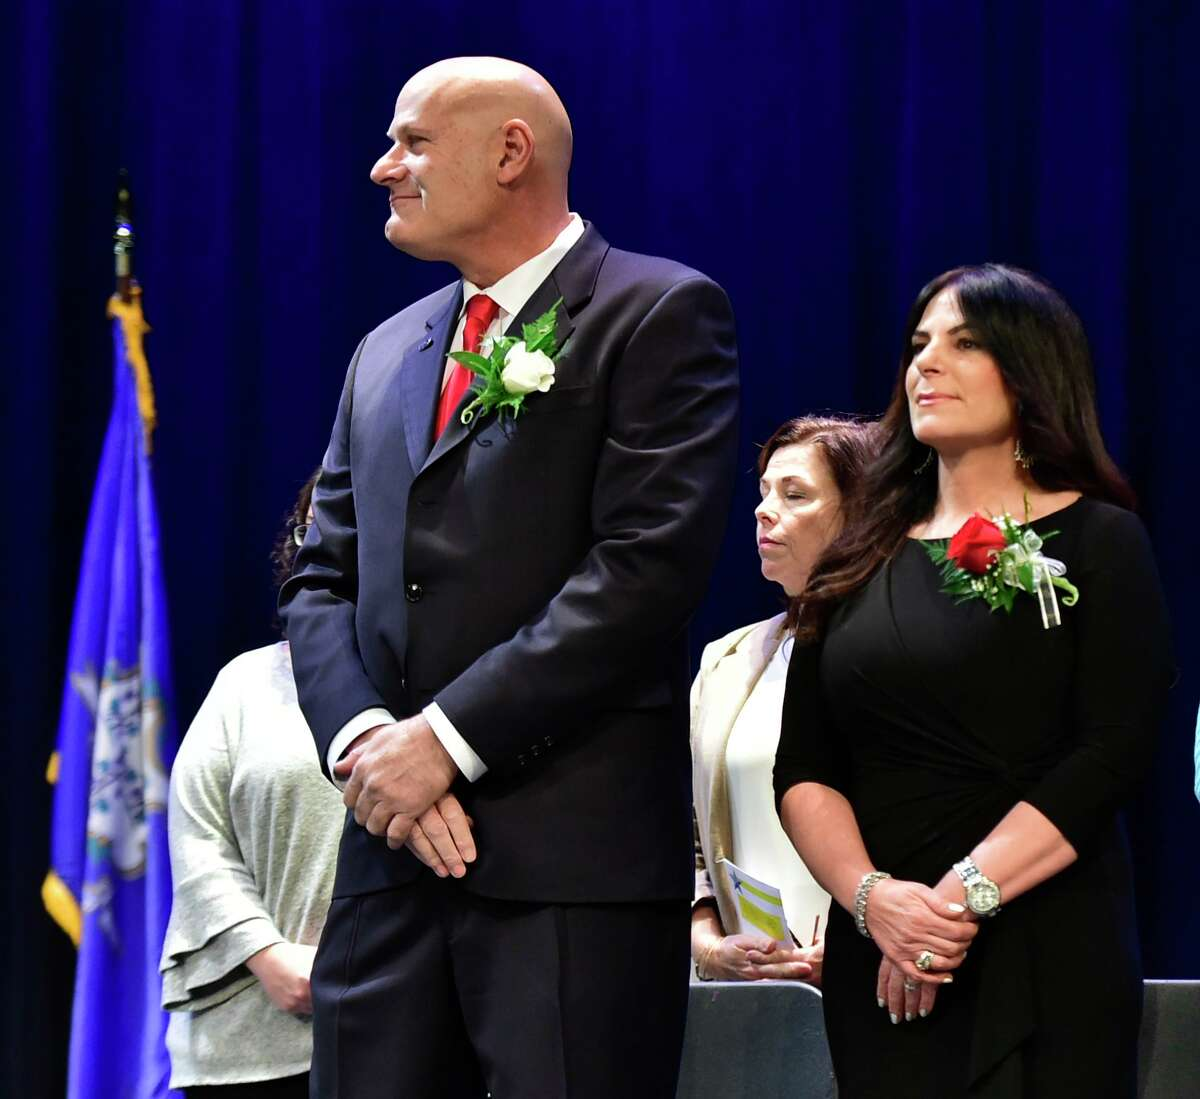 East Haven, Connecticut - Saturday, November 16, 2019: Inaugural Ceremony of East Haven Mayor Joseph A. Carfora that also included the Town Clerk, the Town Council, the Board of Education and the Board of Finance. Saturday at East Haven High School.